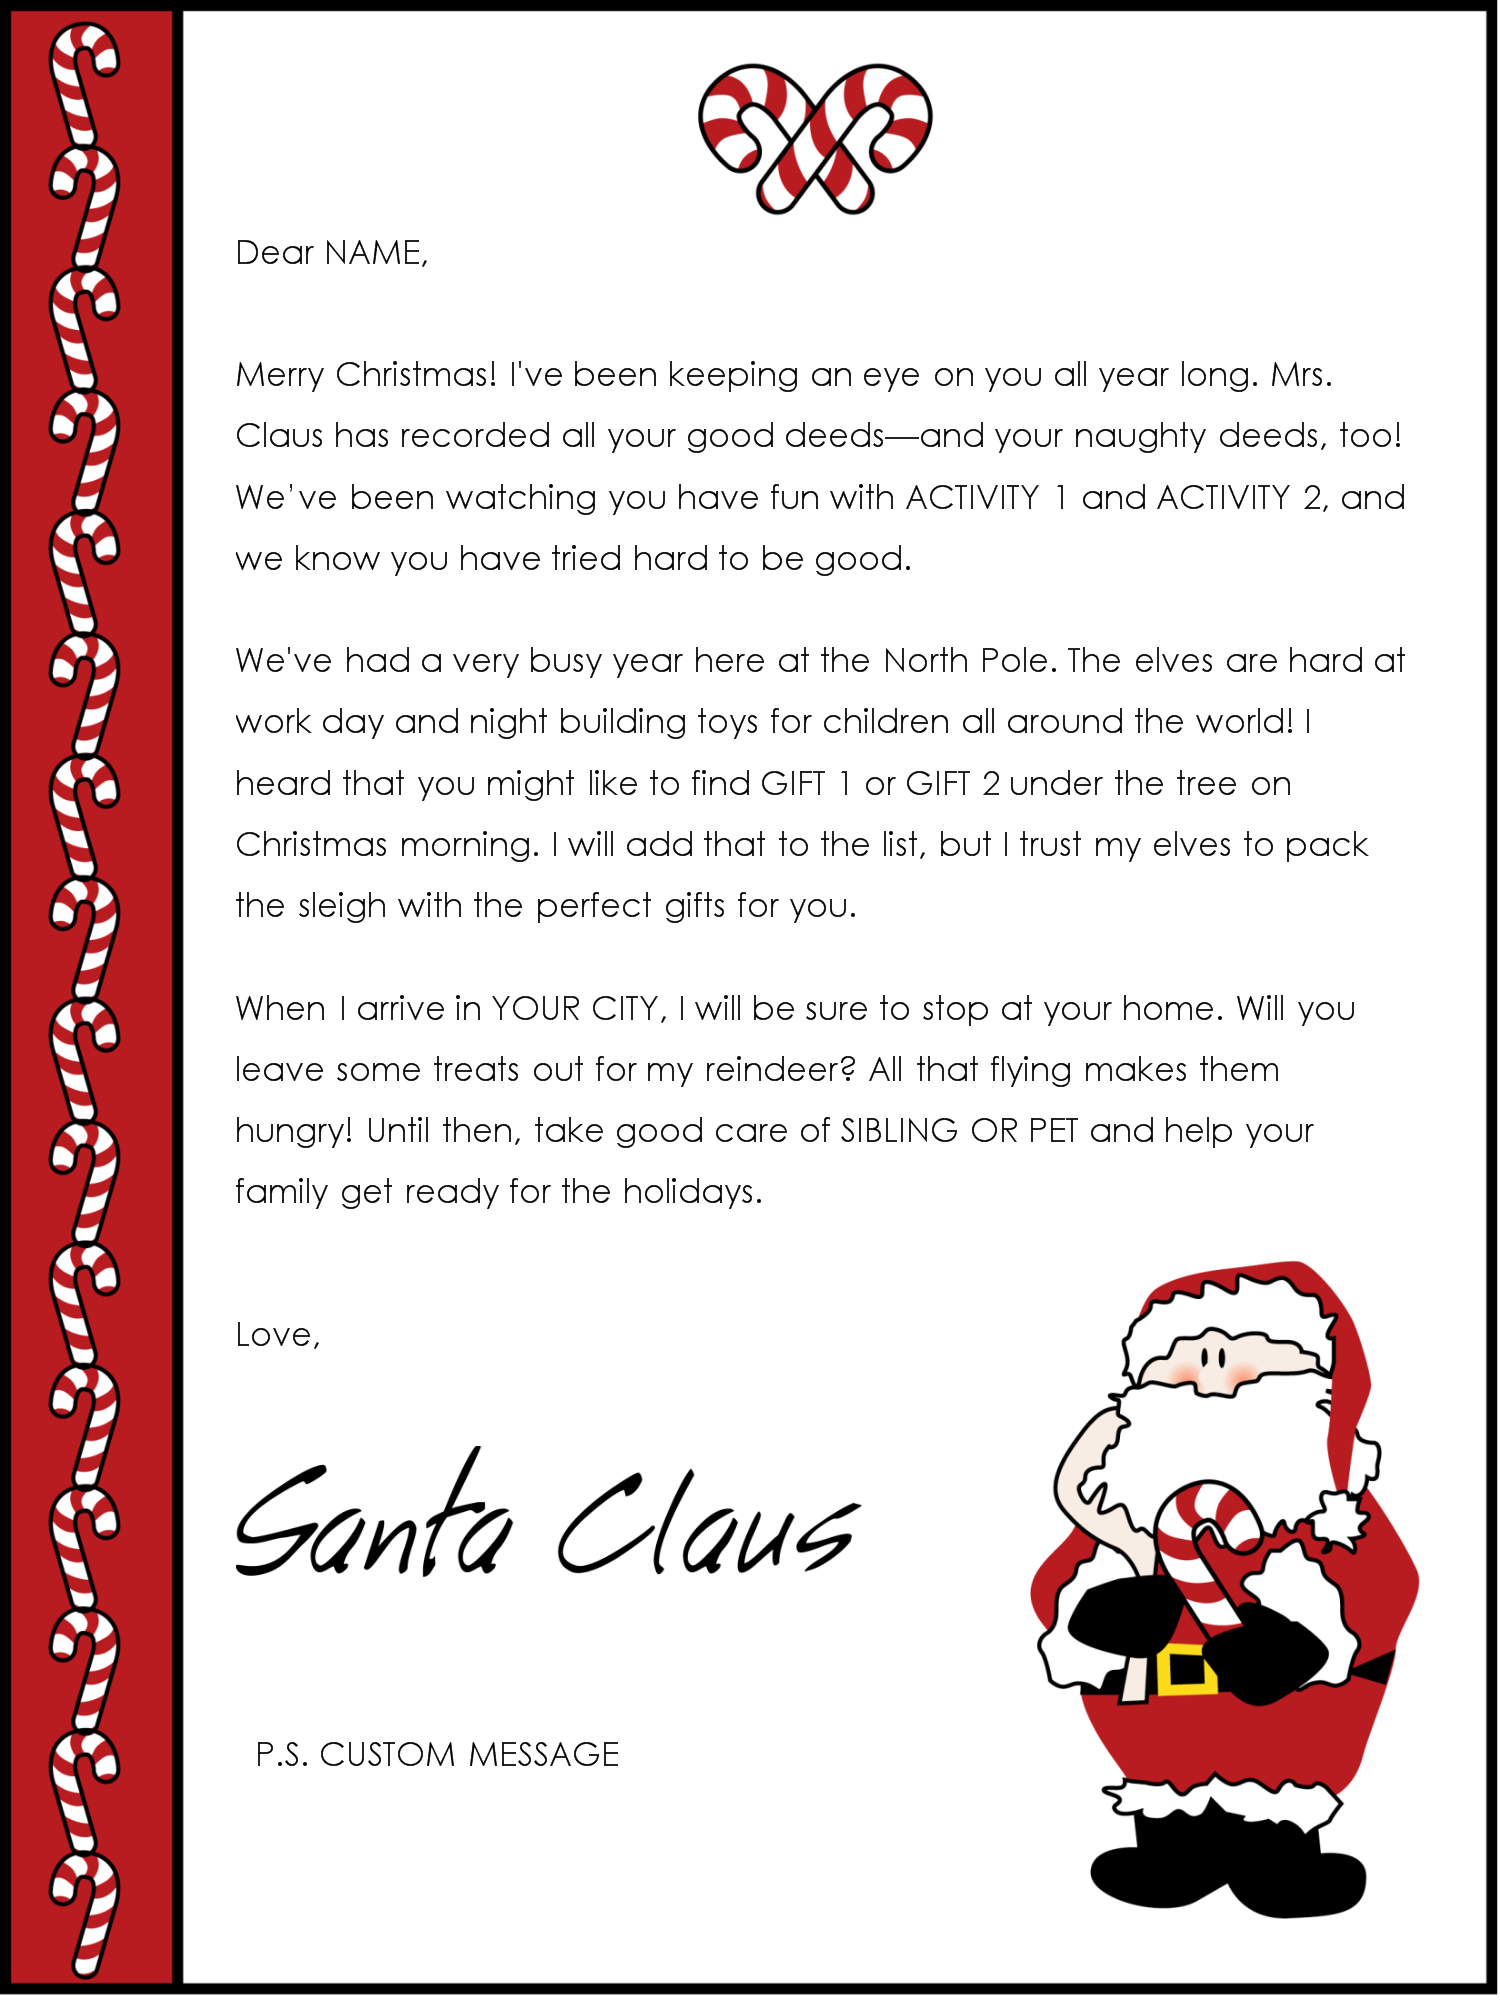 custom letter from santa template example-father christmas letter template 10-g